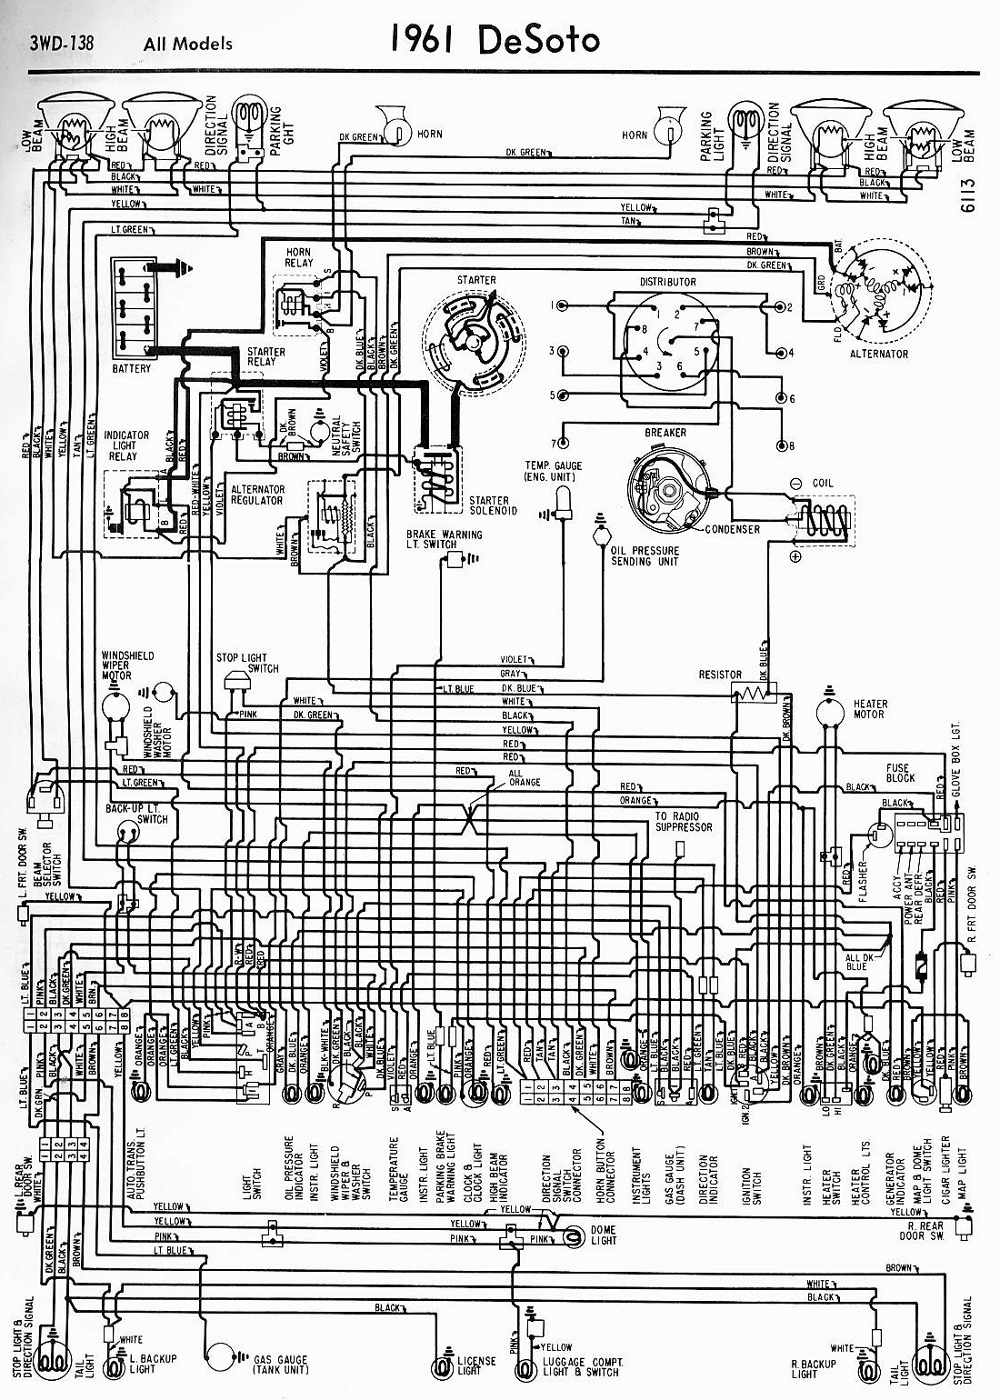 1955 Desoto Wiring Diagram Data Diagrams Chrysler Harness Trusted Rh Dafpods Co 1954 1958